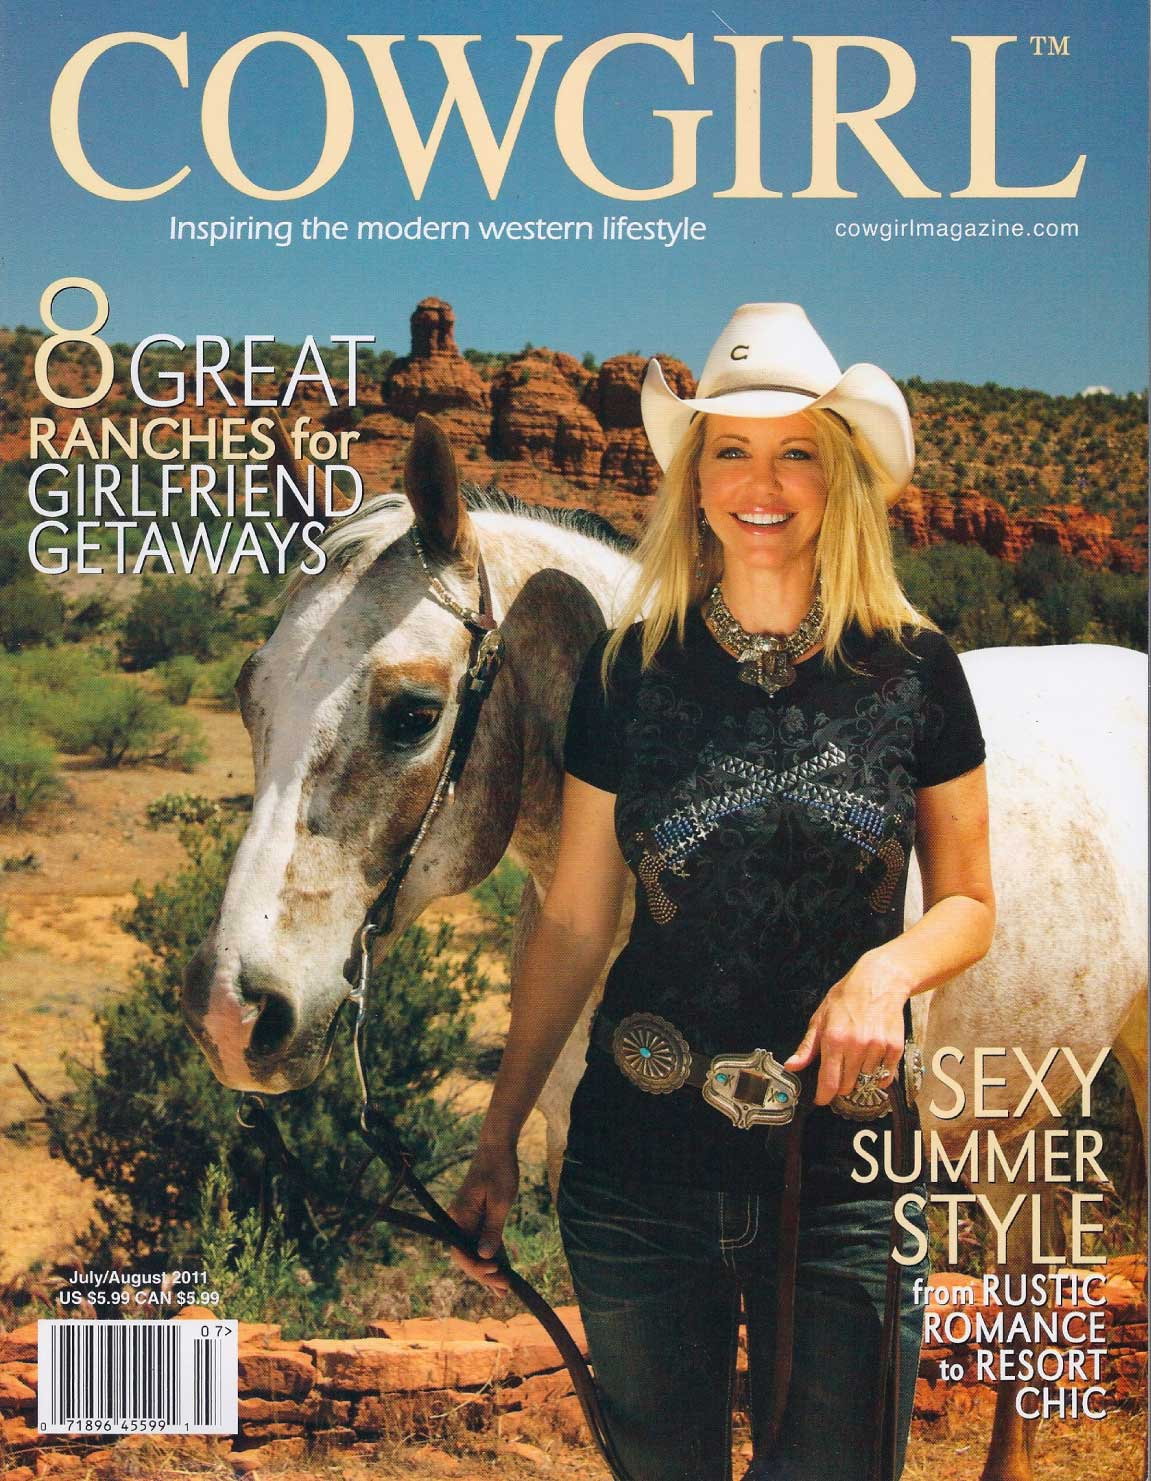 Article-Cowgirl-cover-1.jpg